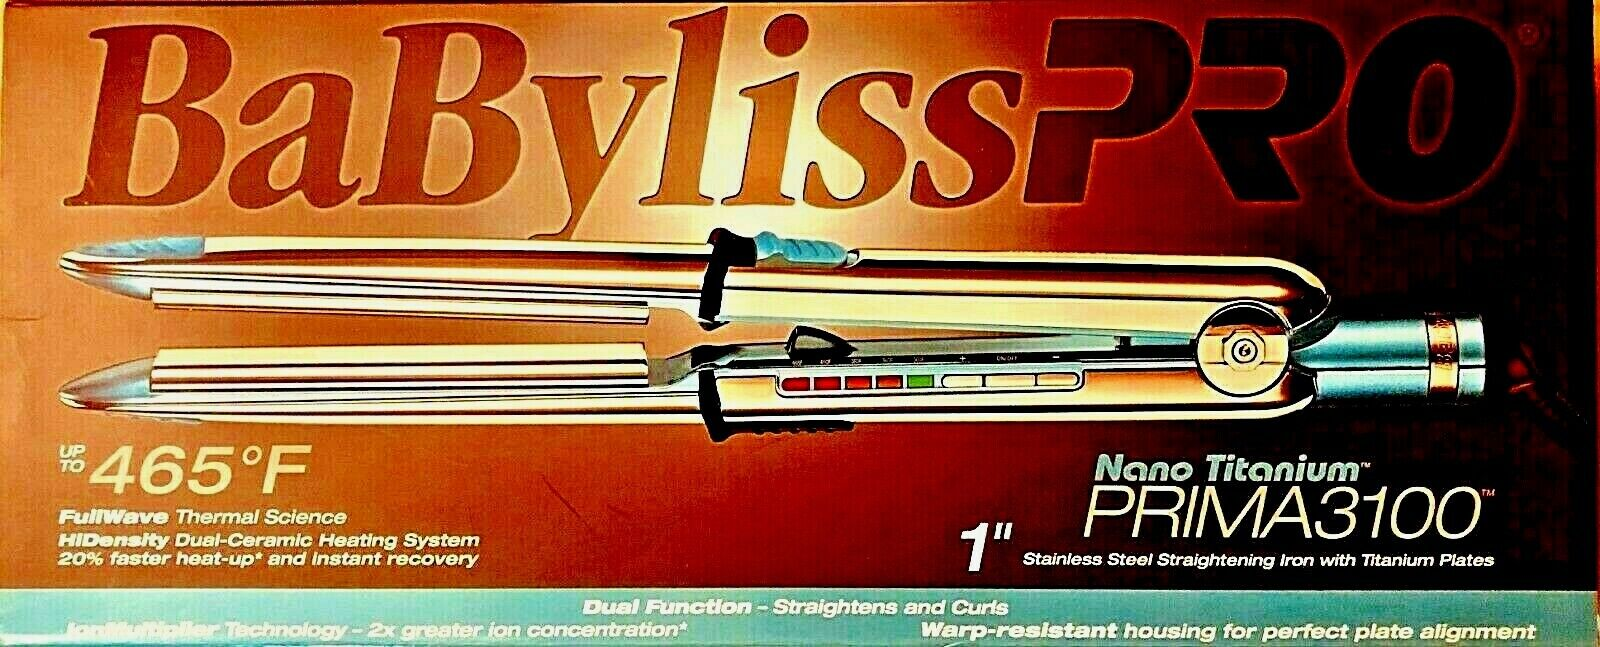 "BaByliss PRO Nano Titanium PRIMA3100T   1"" Stainless Steel"